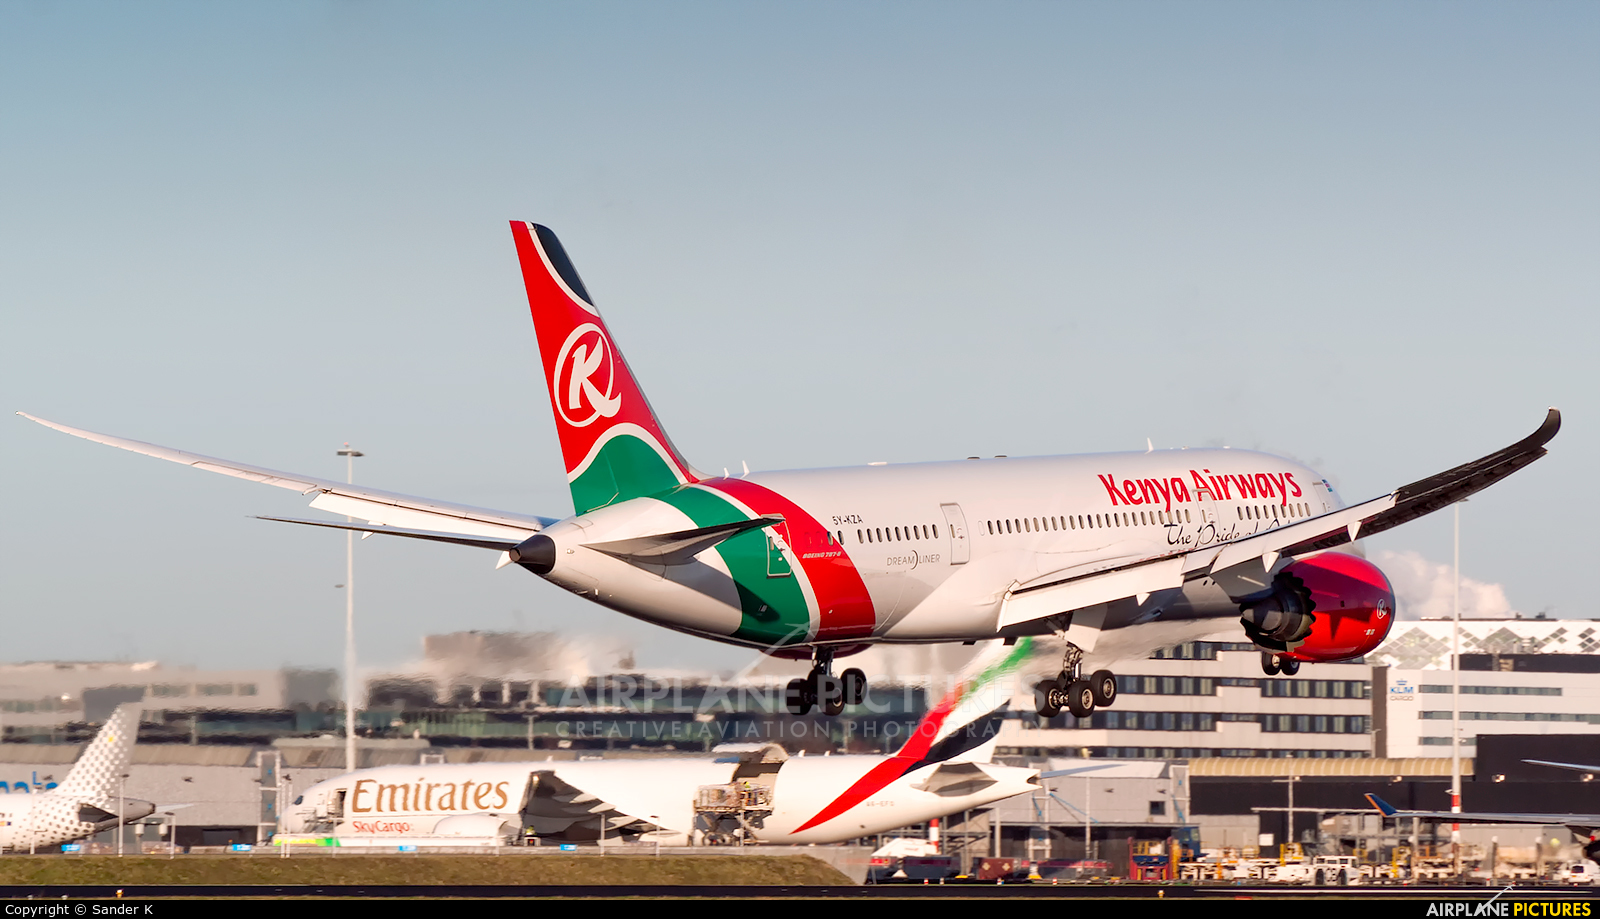 Kenya Airways 5Y-KZA aircraft at Amsterdam - Schiphol